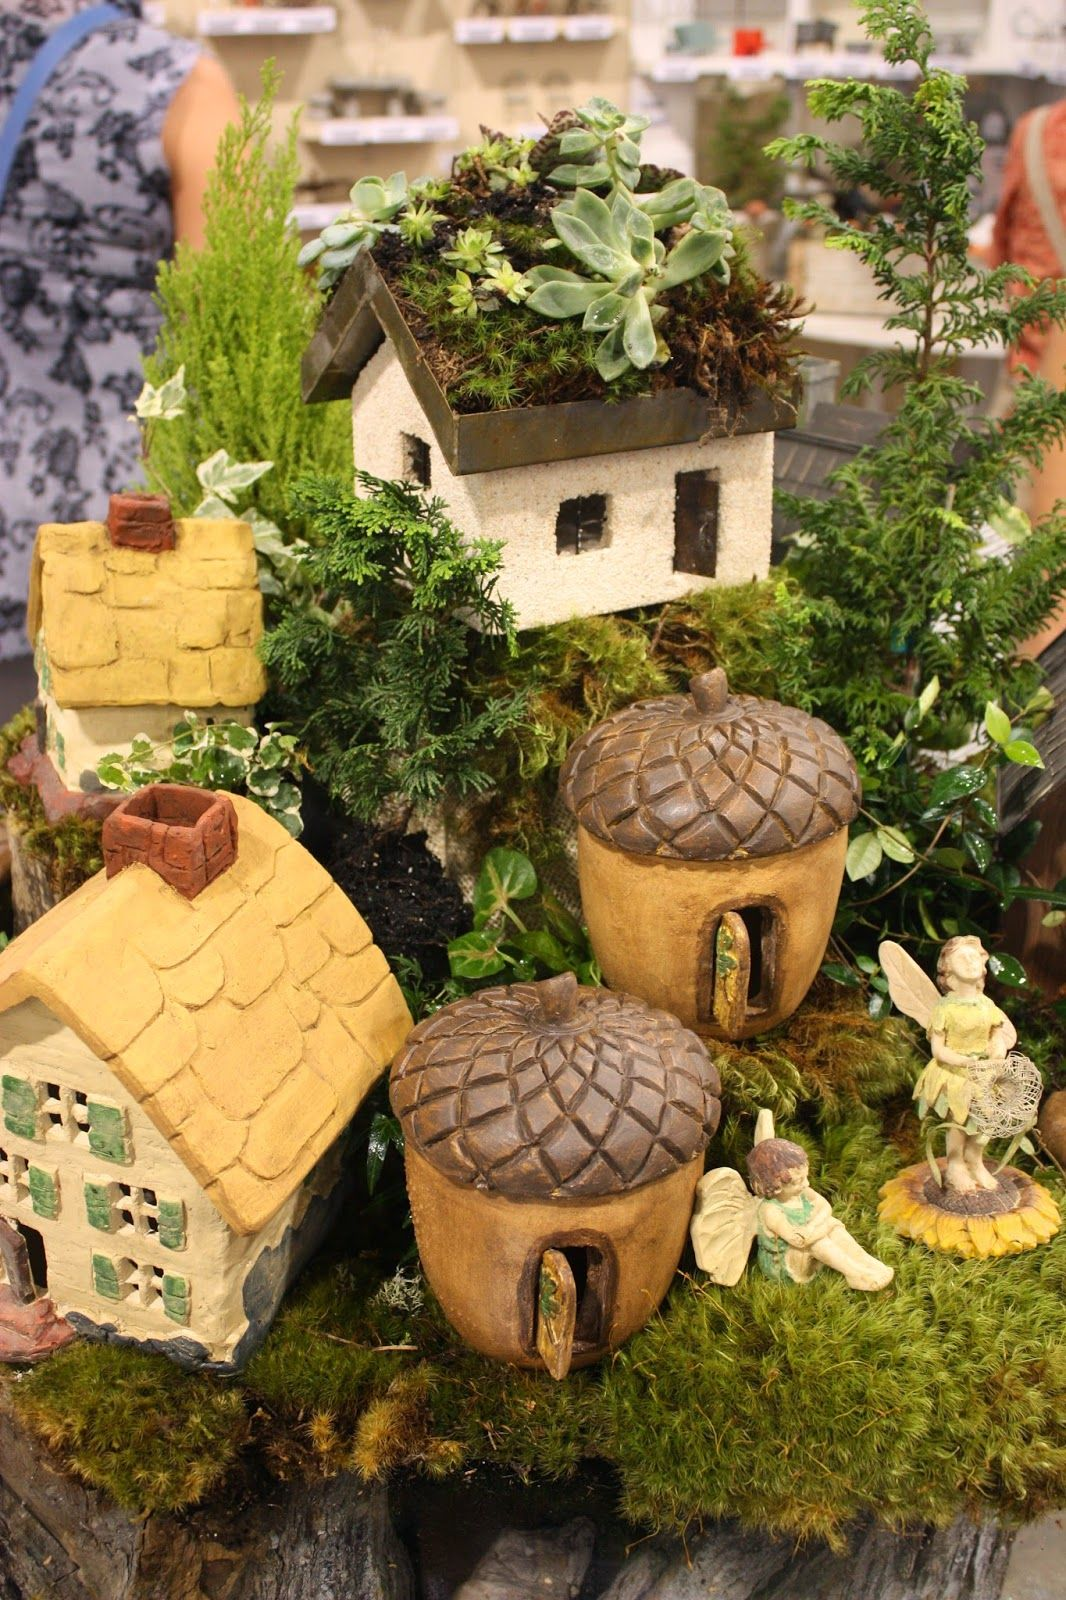 If you like Fairy Gardens here are